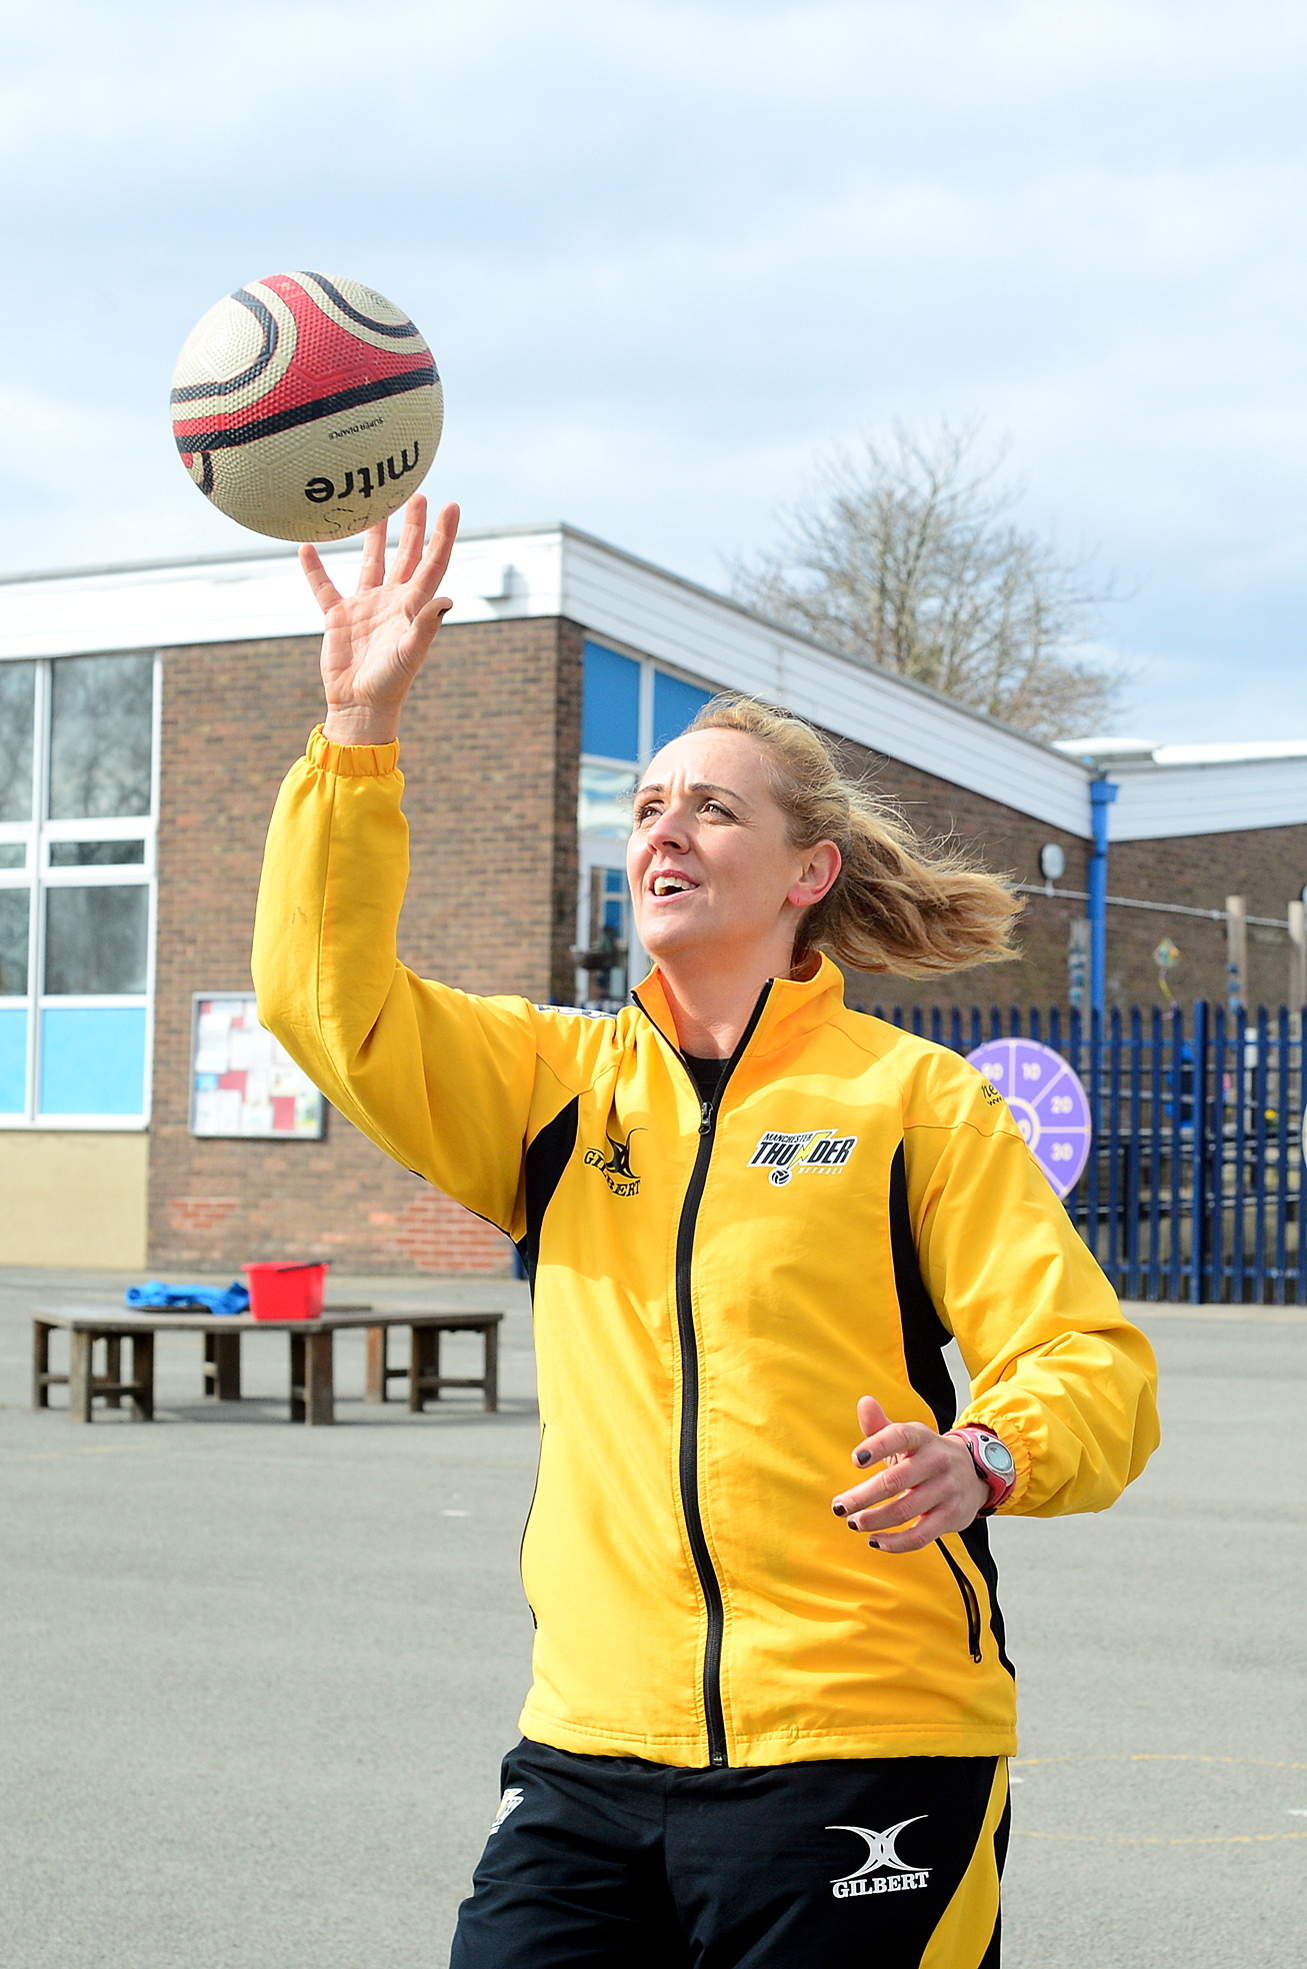 SCORE: England netball coach Tracey Neville teaches the pupils at Holcombe Brook Primary School in Ramsbottom, about netball